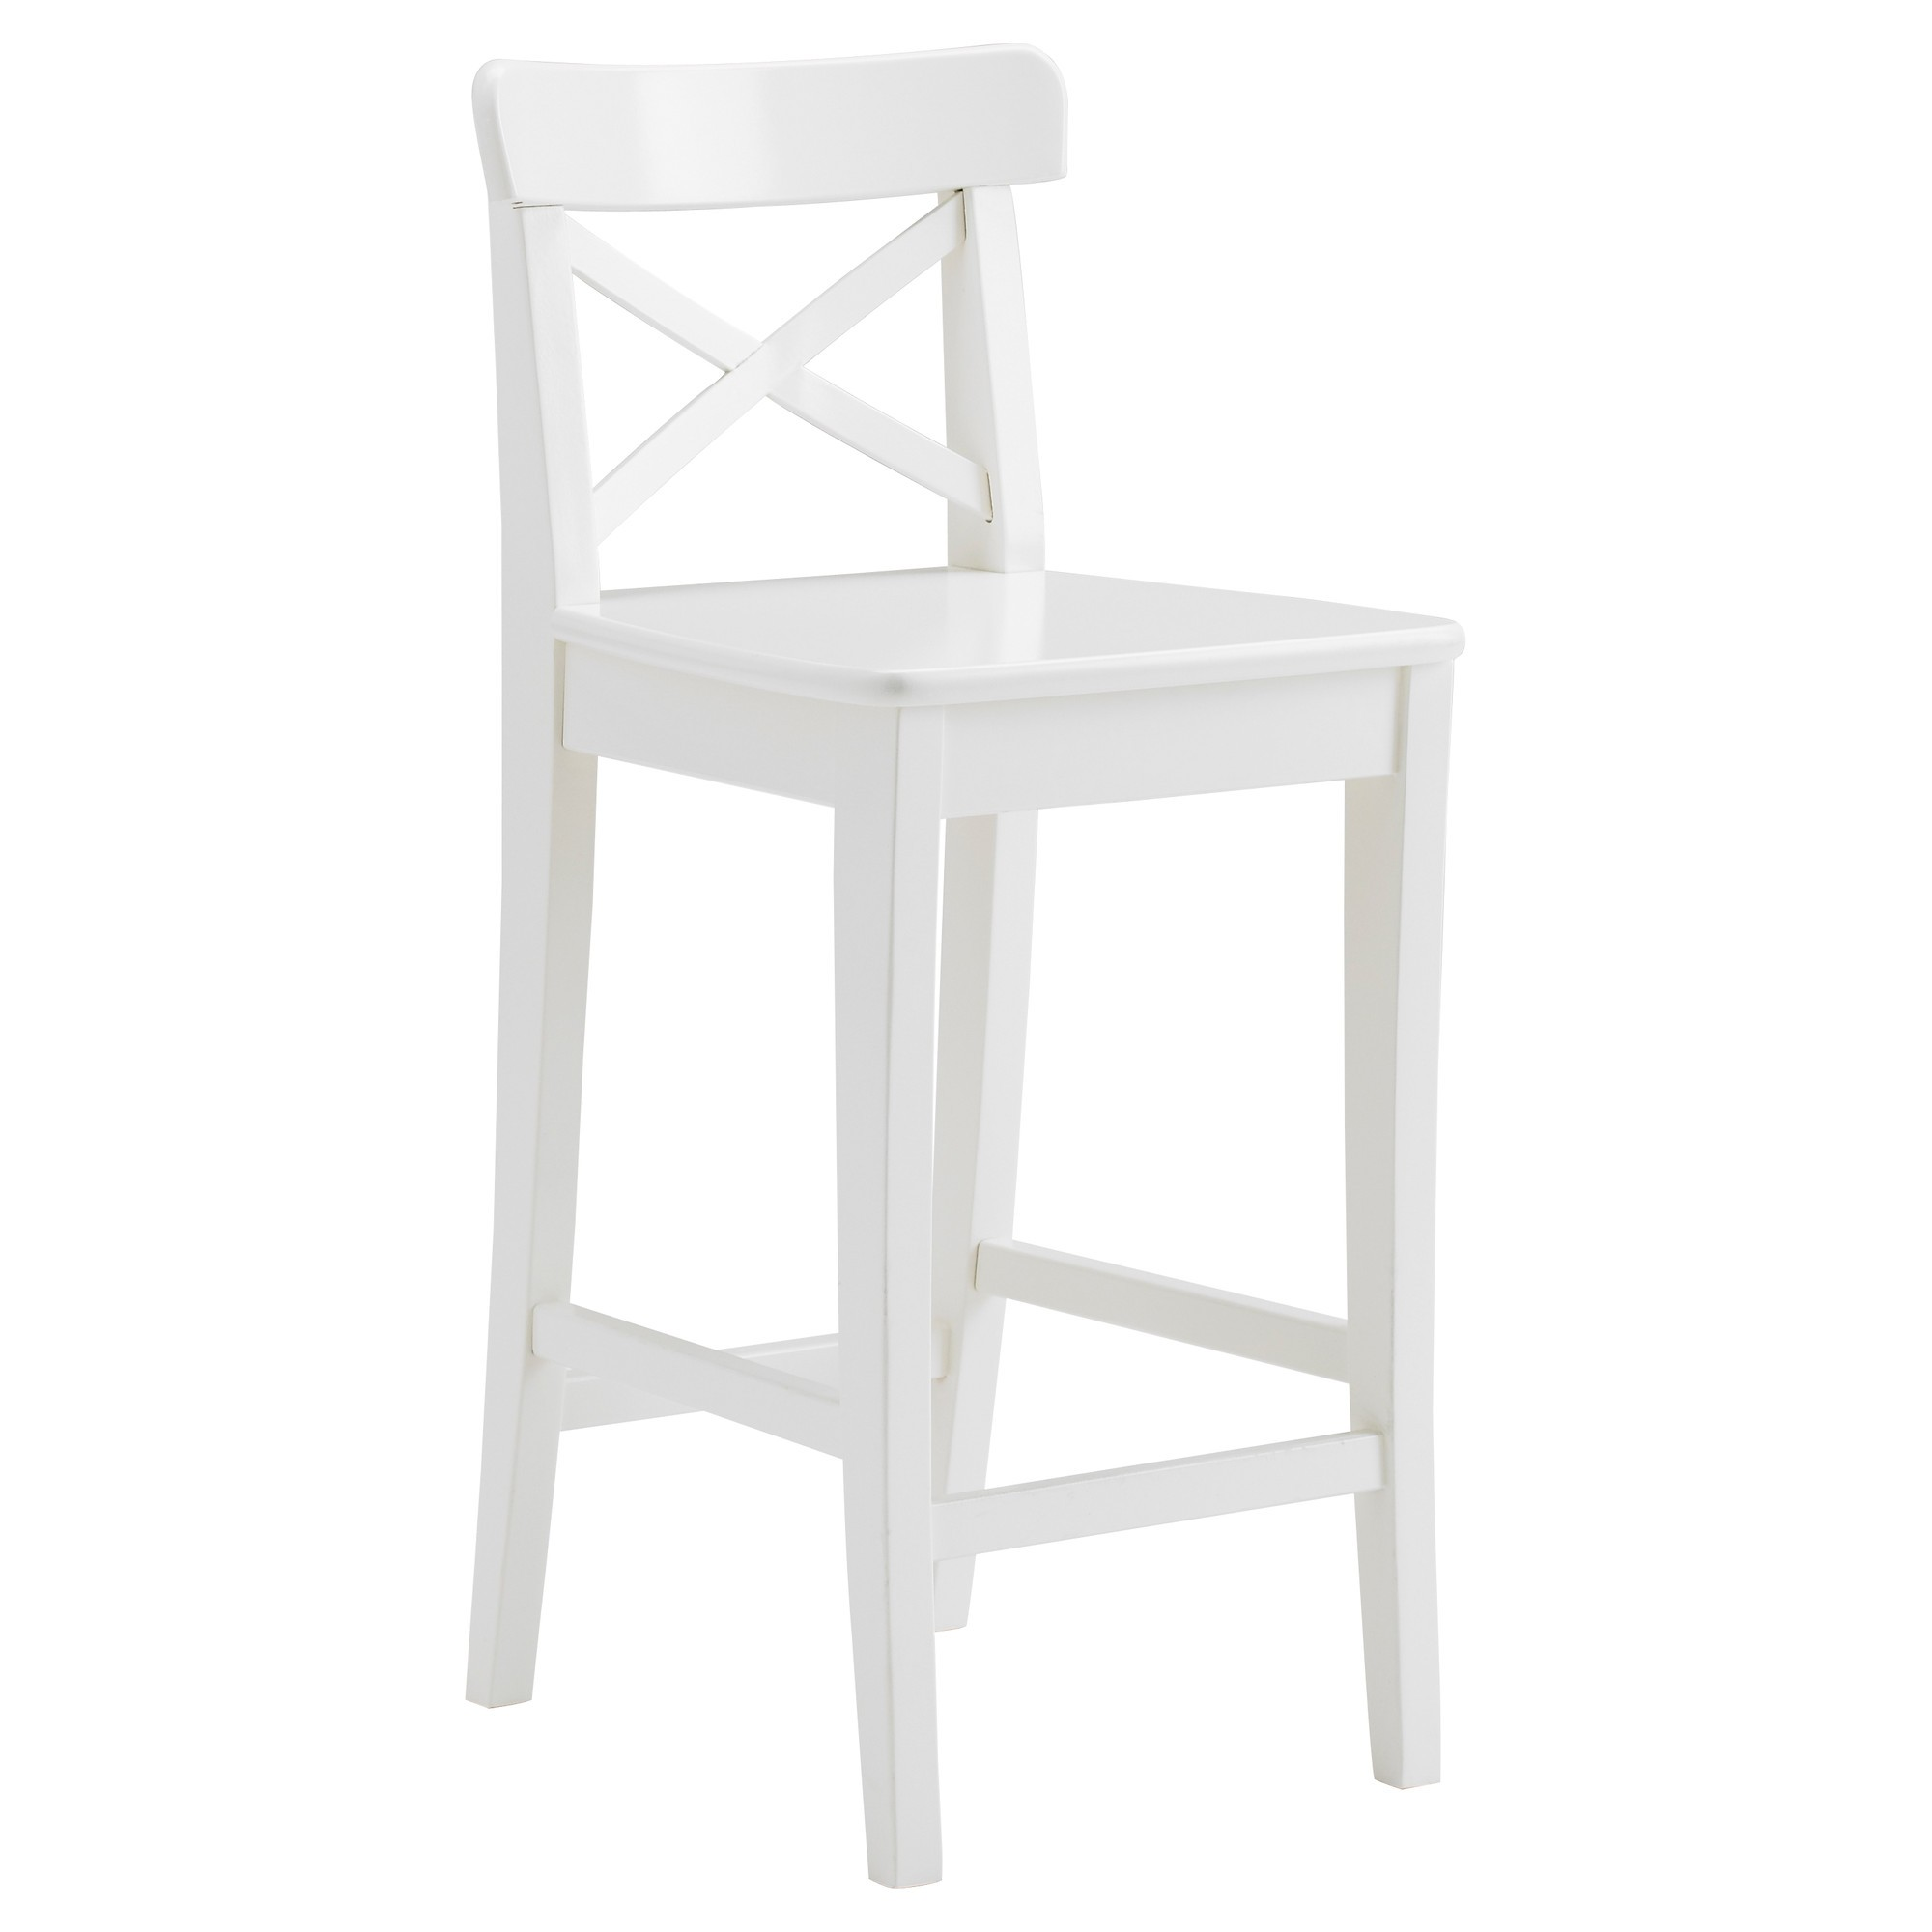 Chaise bistro alu ikea for Table chaise alinea